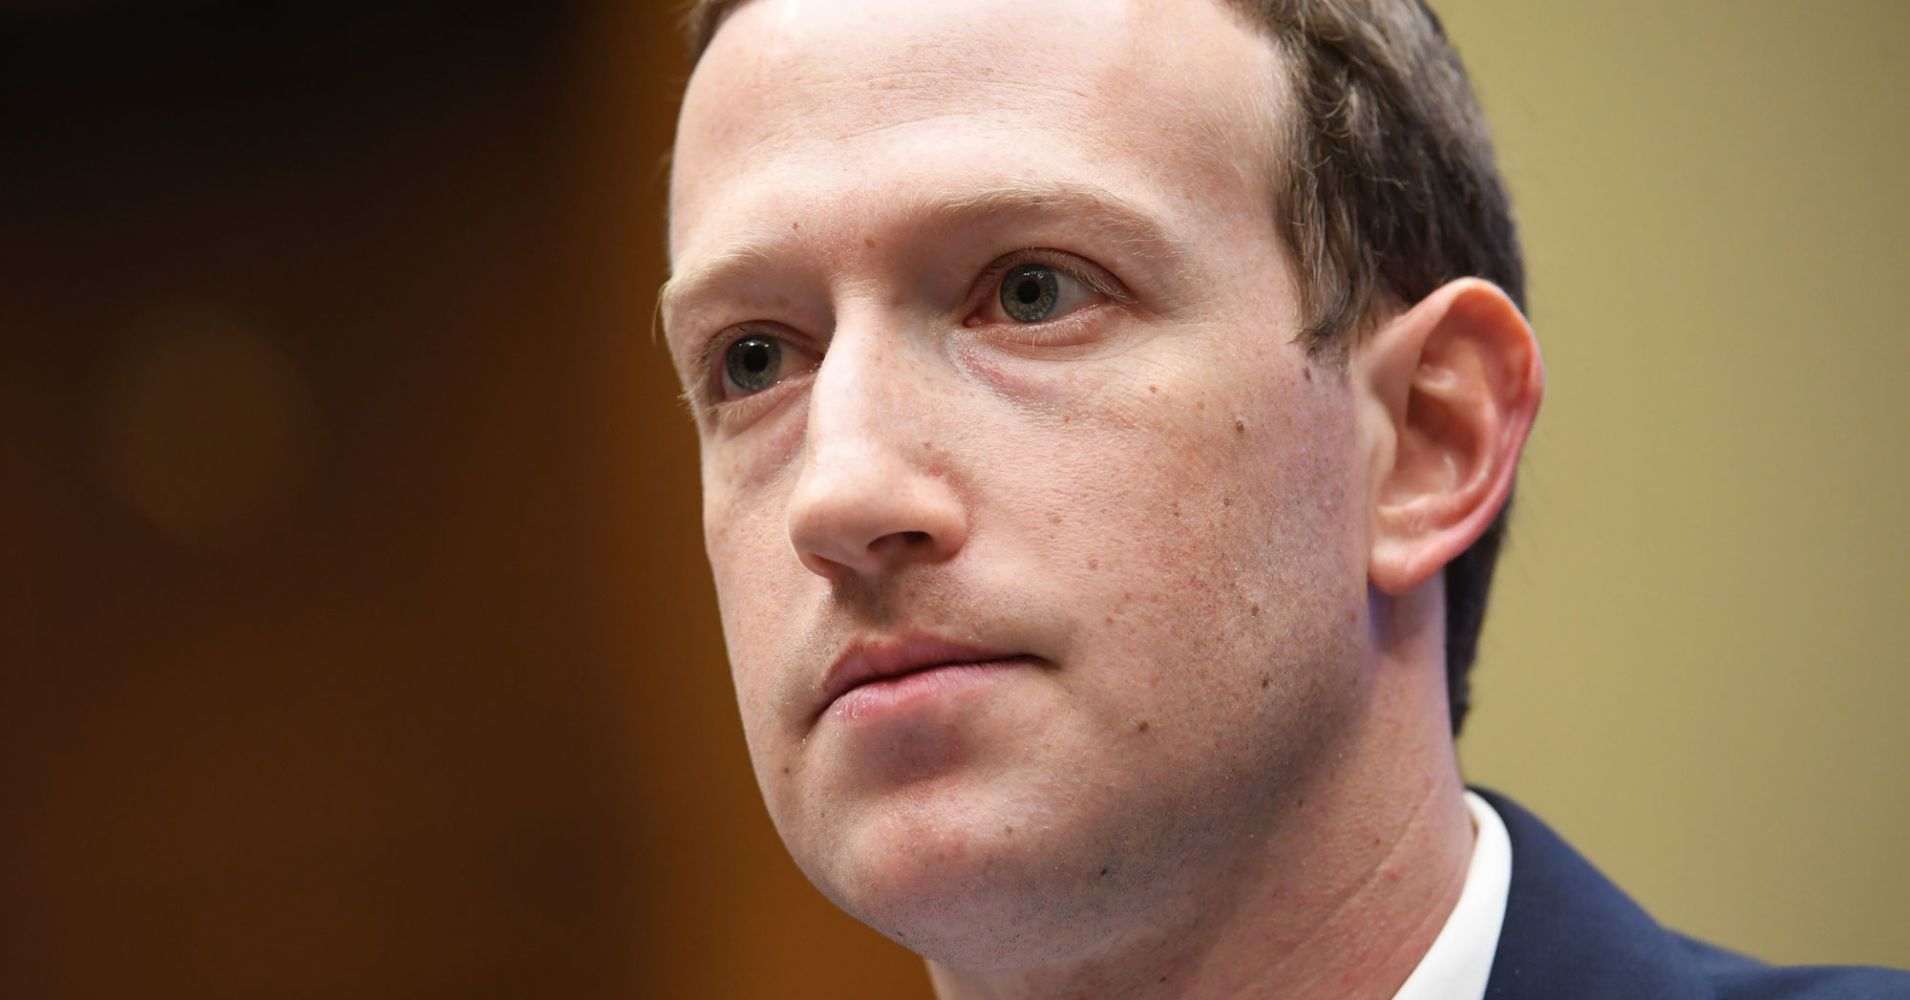 Lawmakers call for Facebook's Zuckerberg to be held accountable